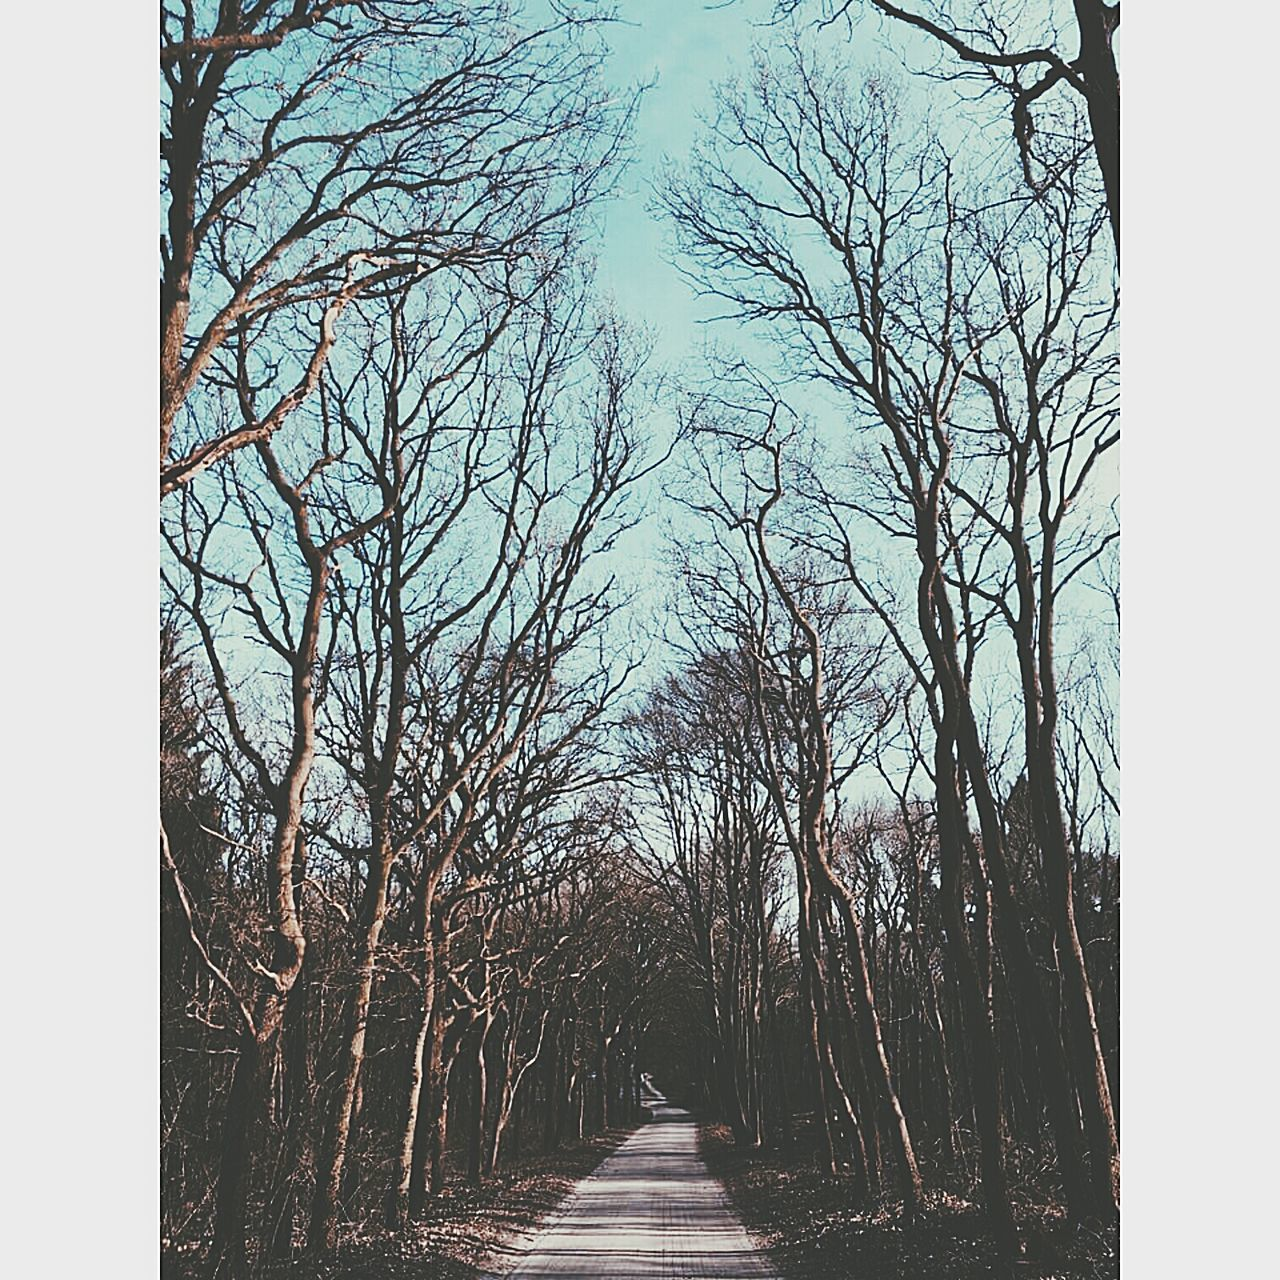 Into The Woods Bright Sky Trees Freedom World Peace Silence Different Perspective Lonely Fresh